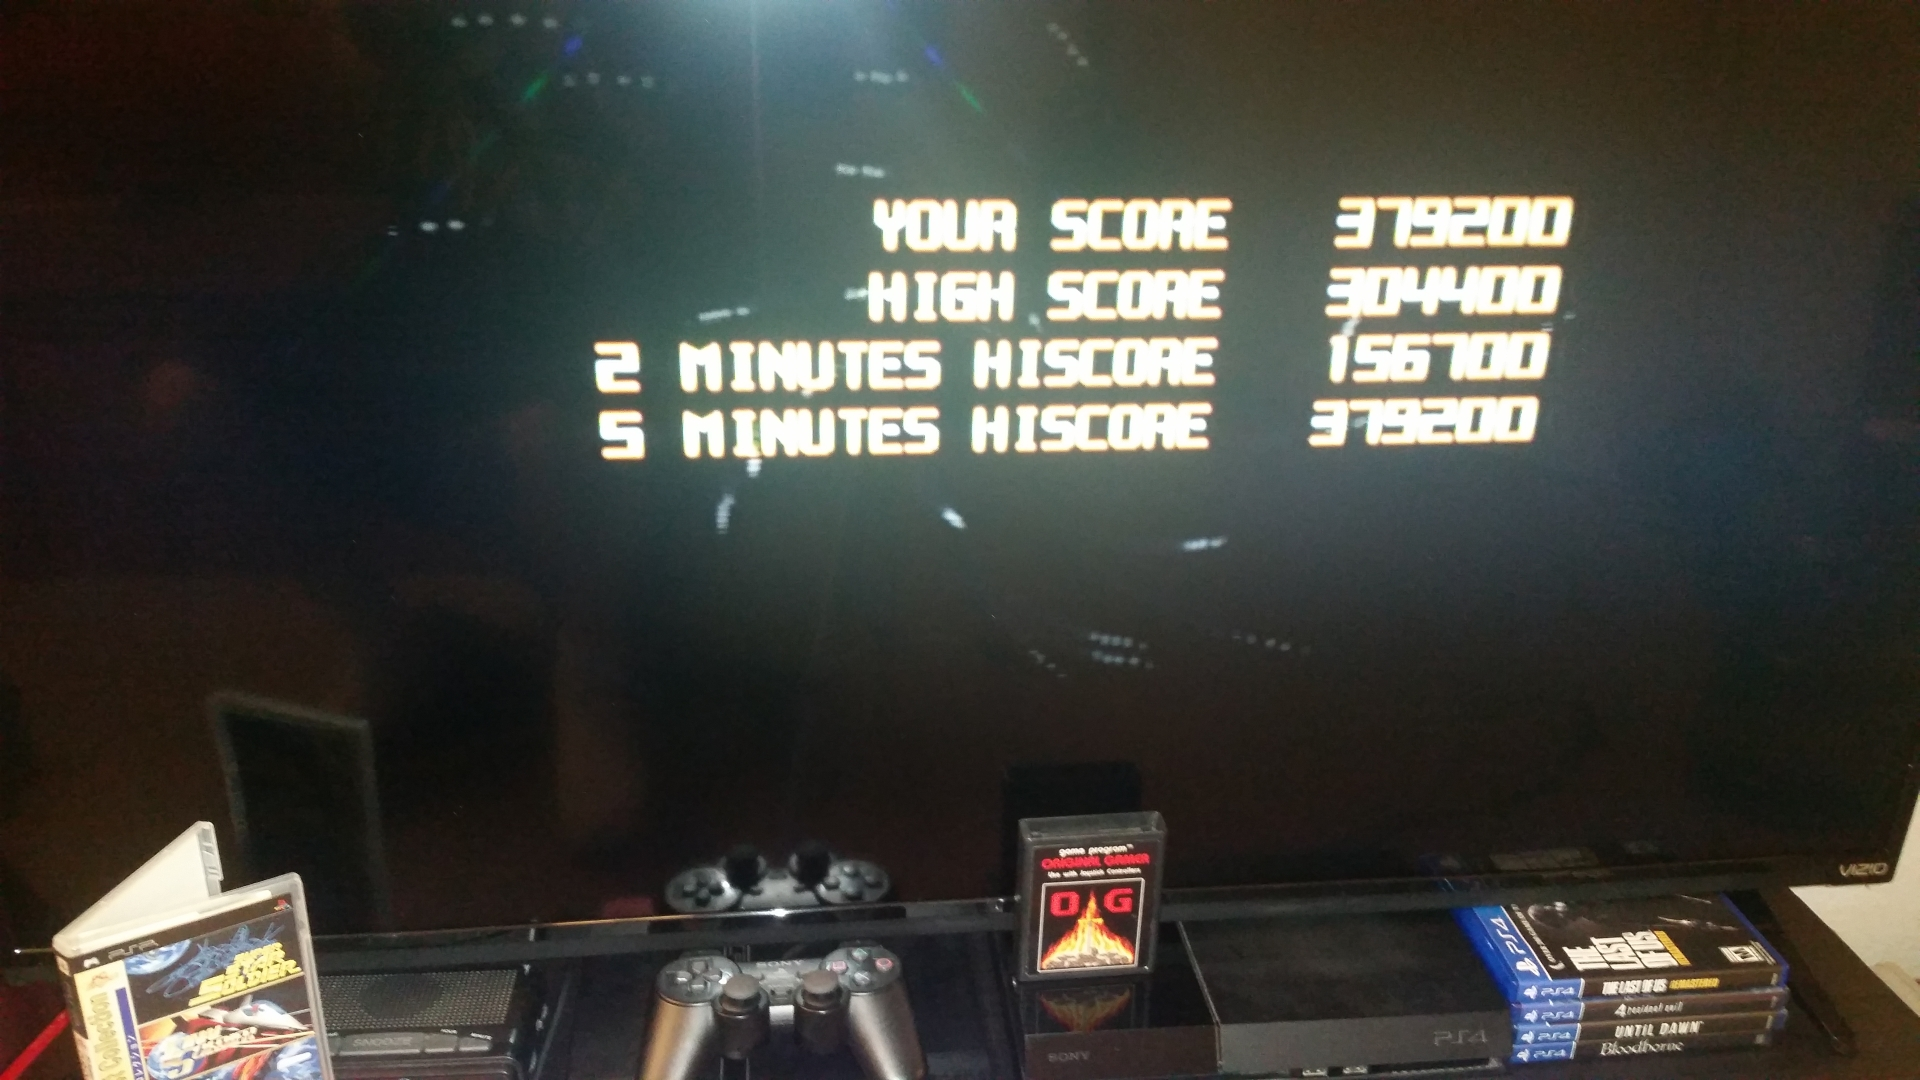 OriginalGamer: Soldier Collection: Super Star Soldier [2 Minute] (PSP) 156,700 points on 2018-01-30 22:56:16